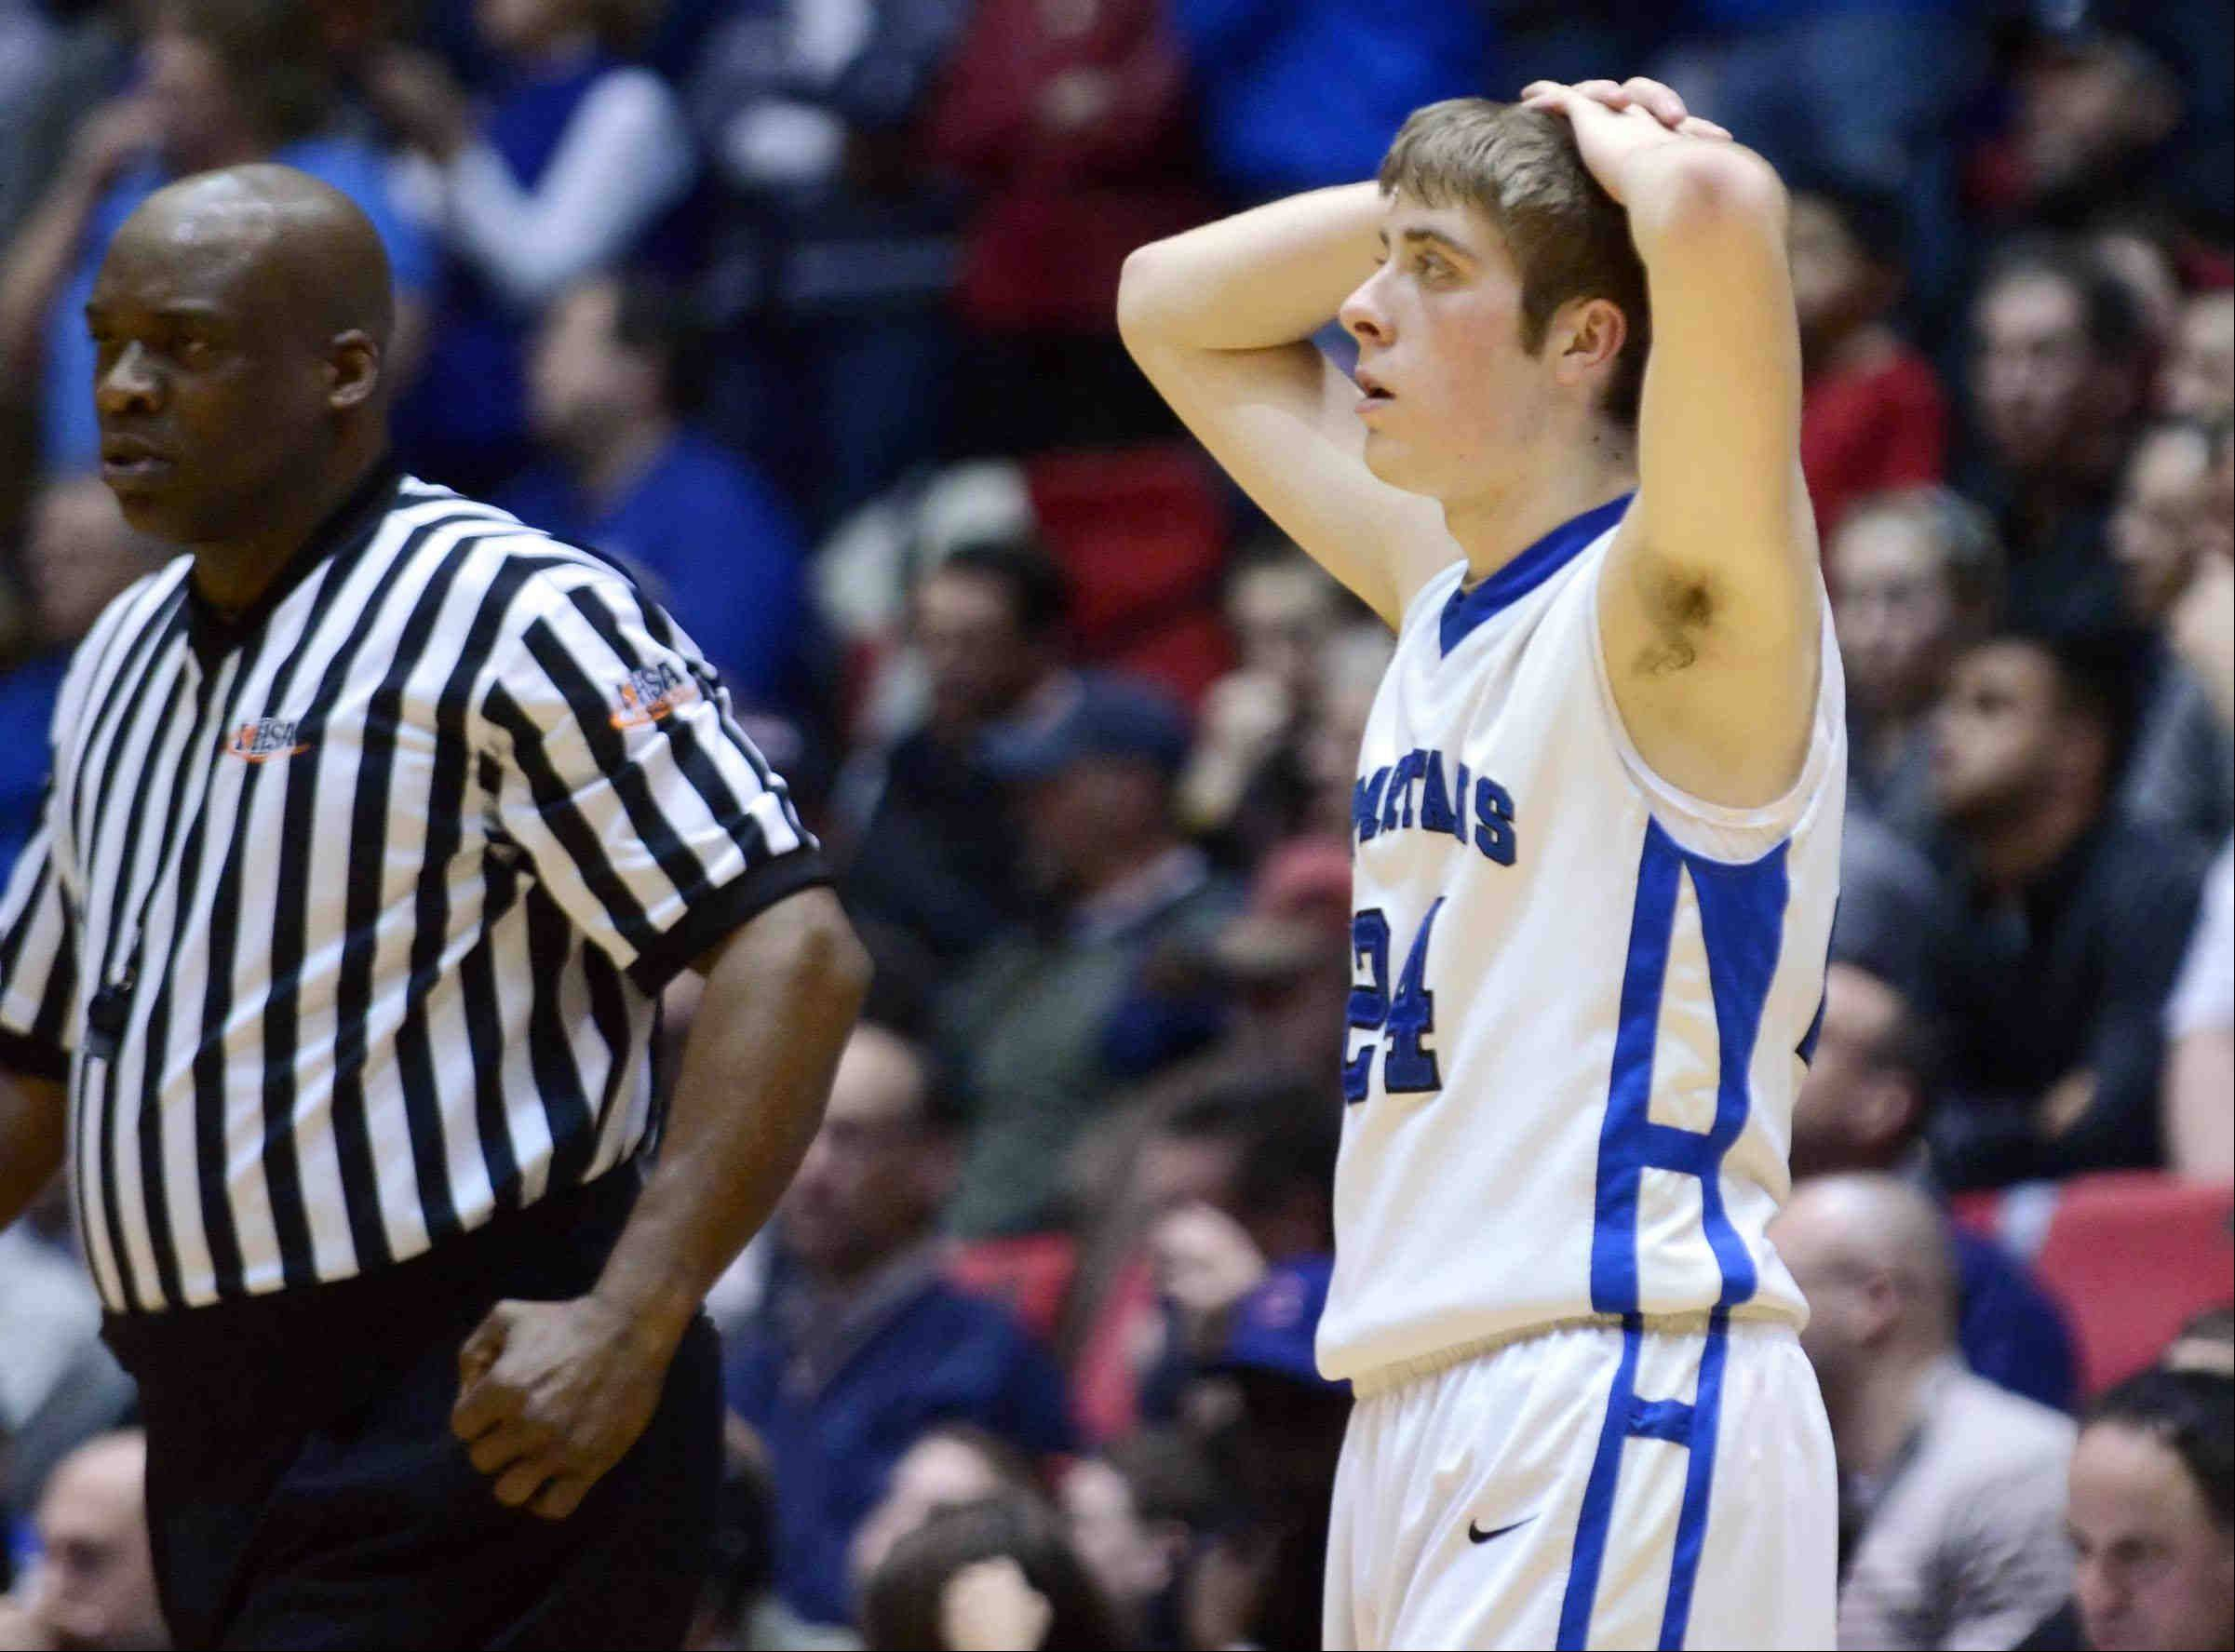 St. Francis' Matt Bonner reacts to committing his fifth foul near the end of the game.